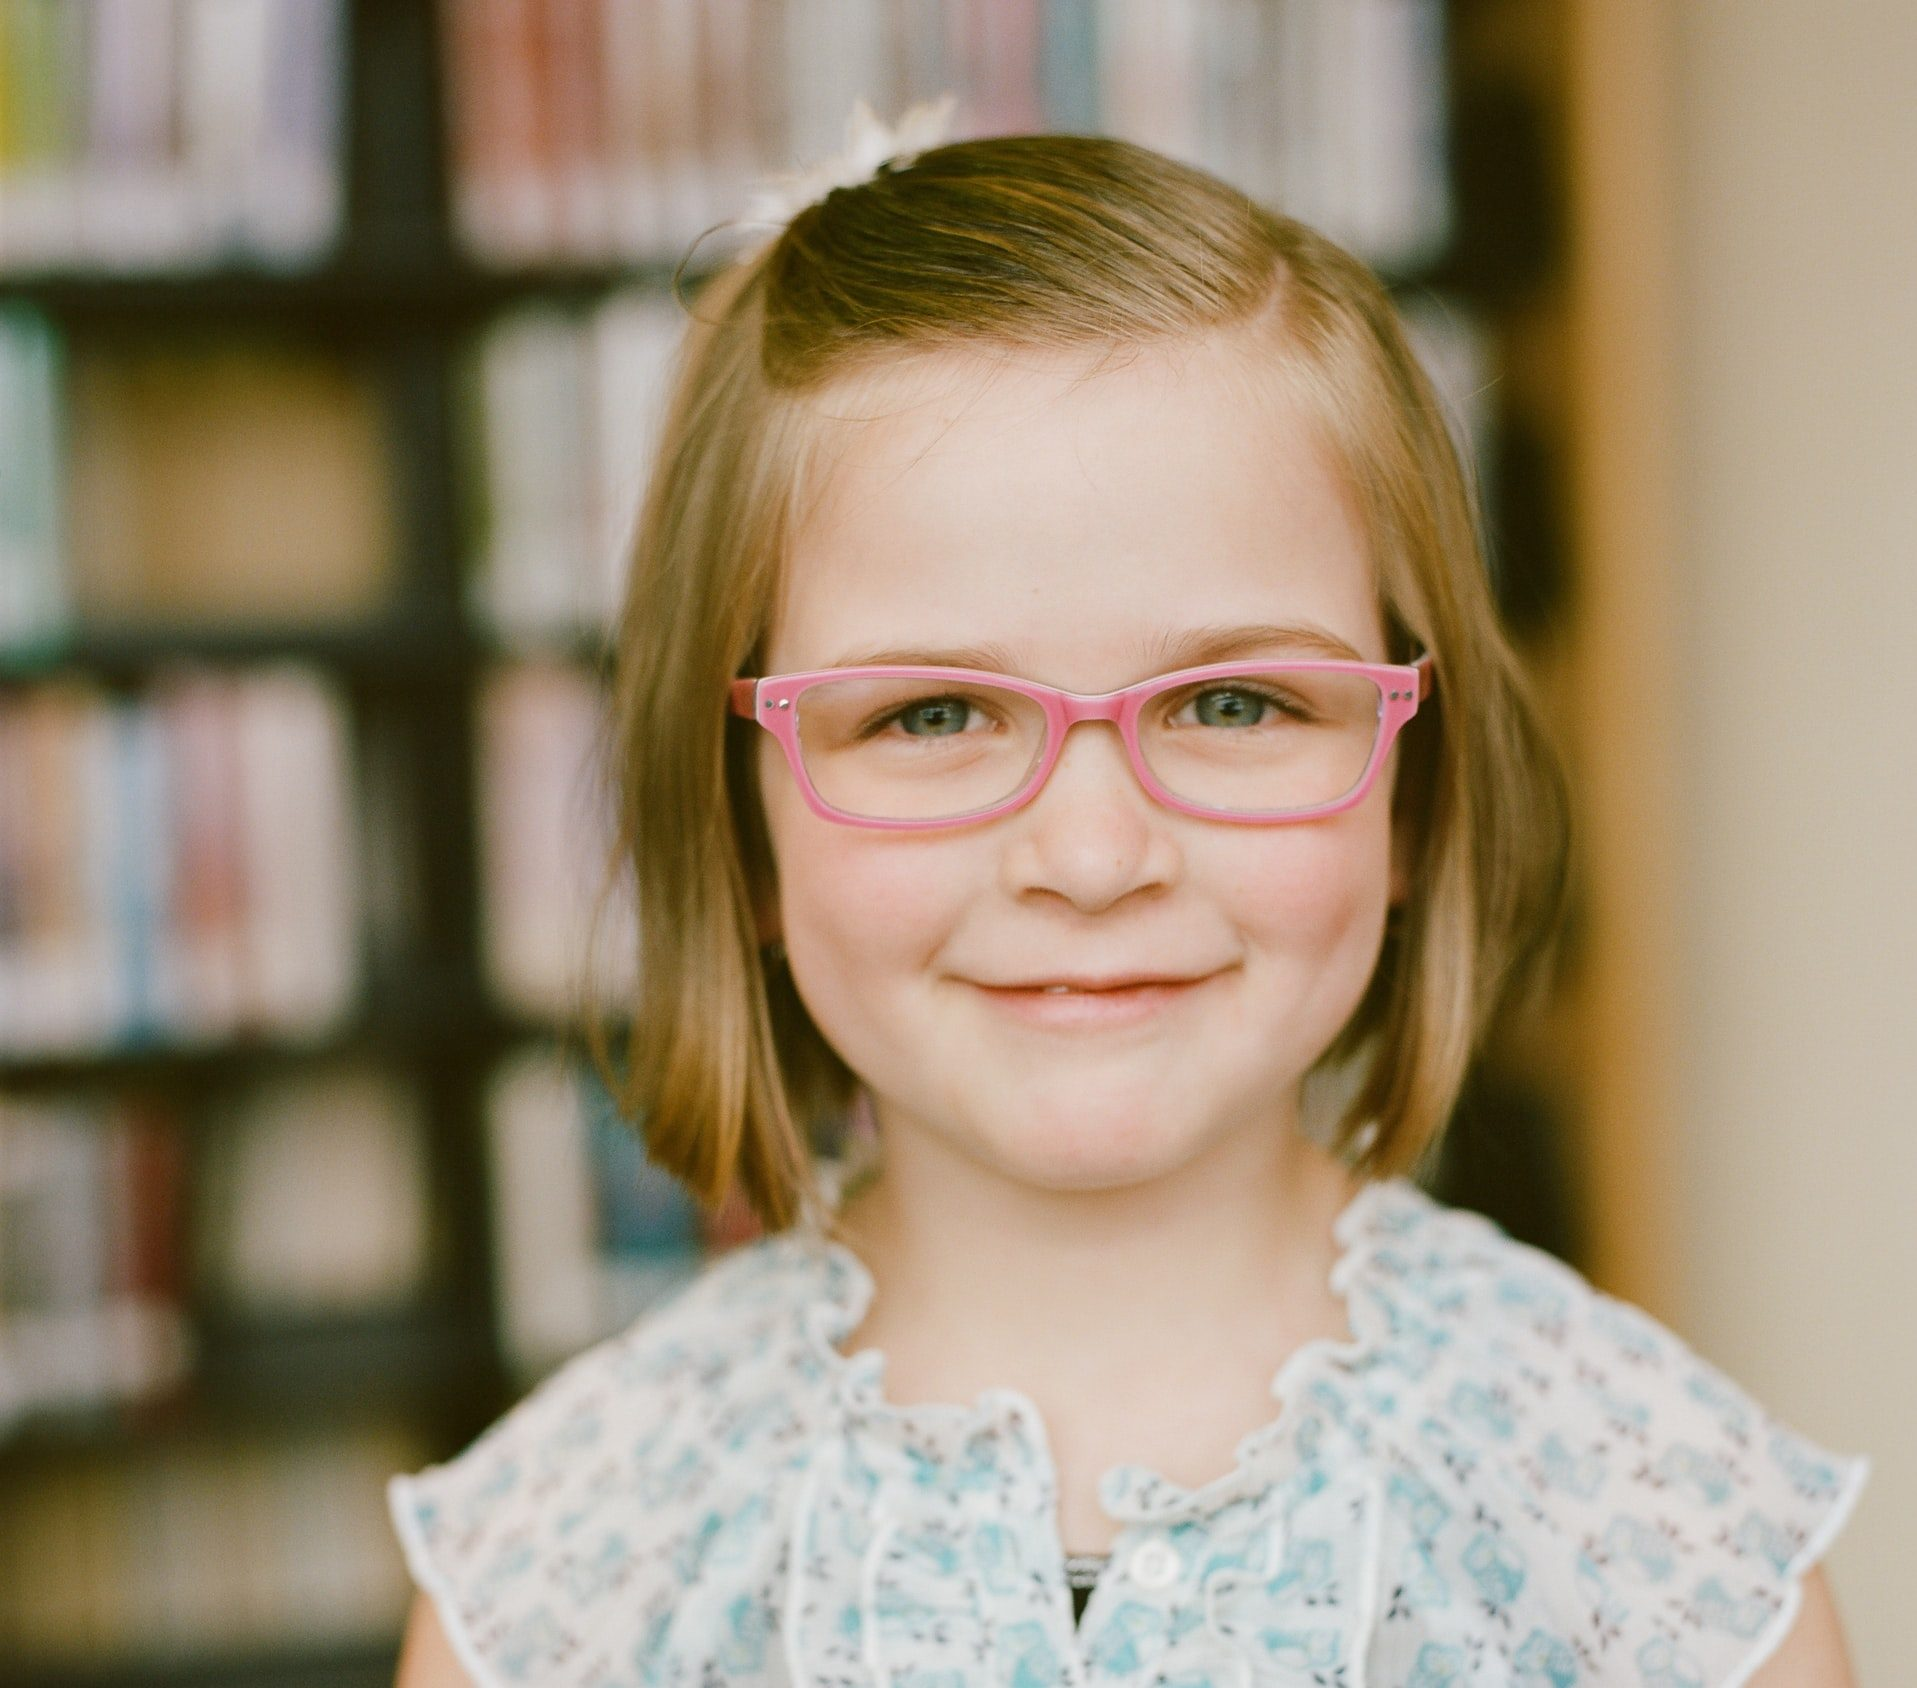 Why it's important children get eye tests